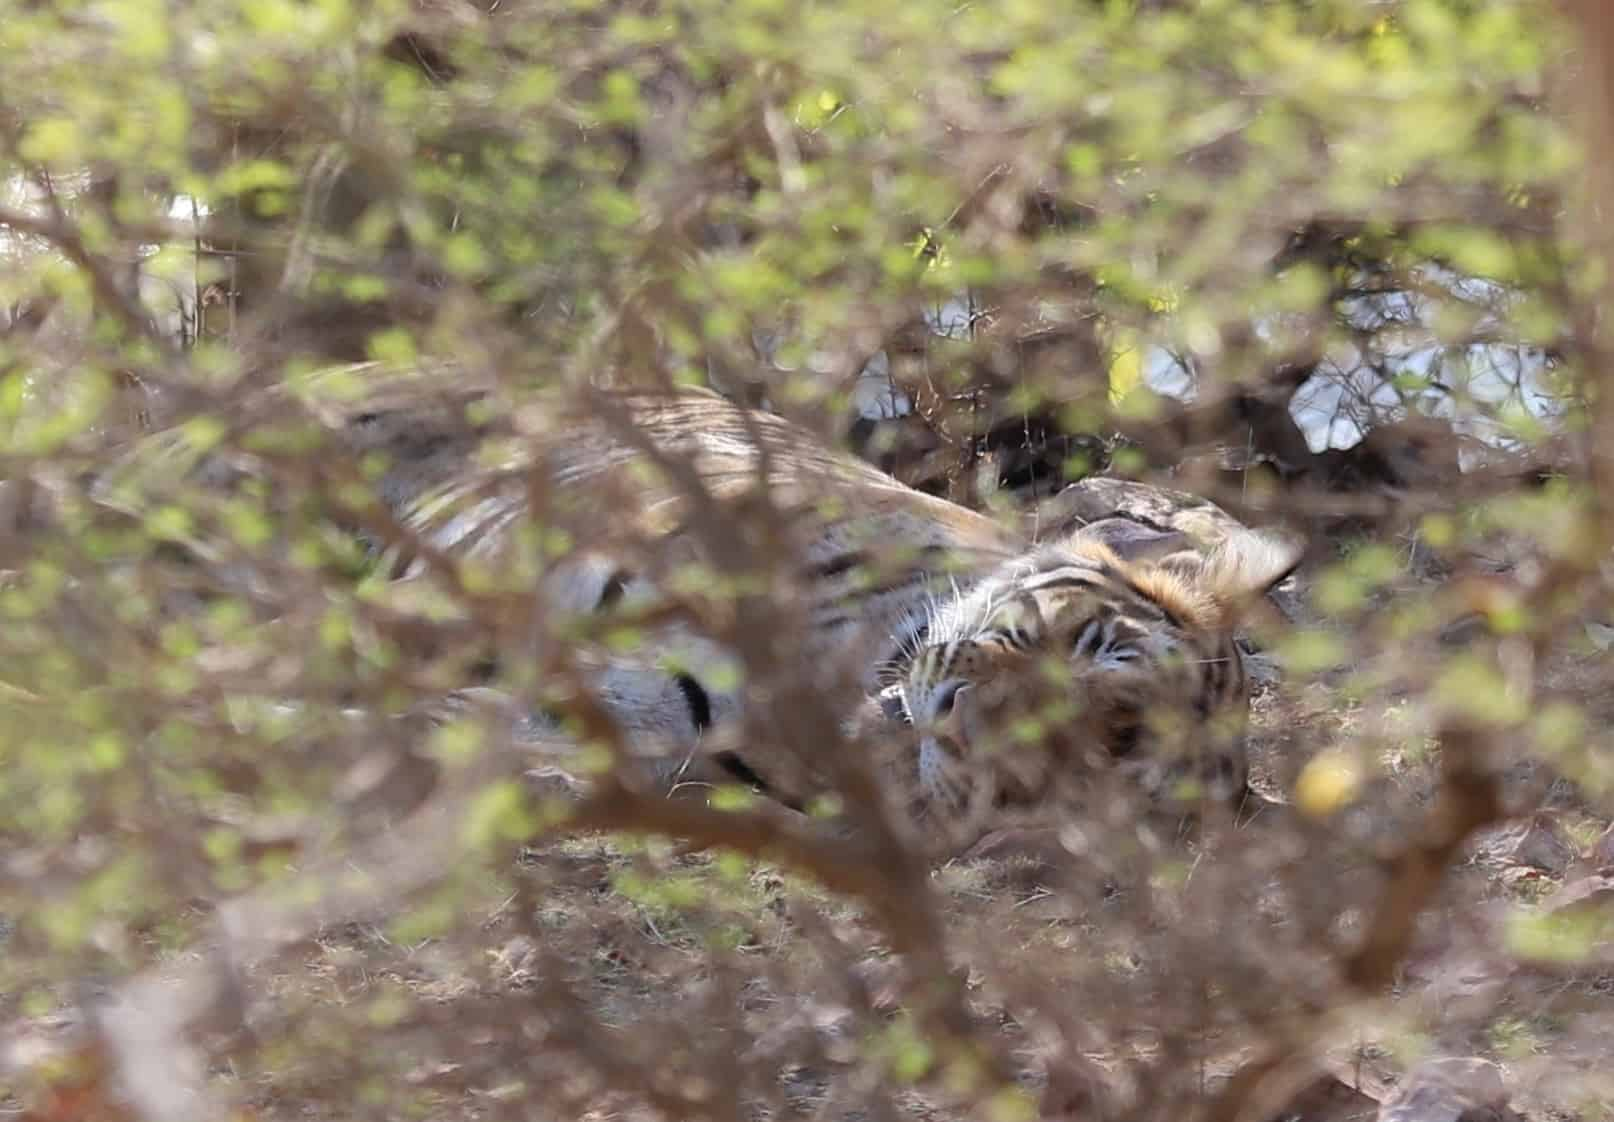 tiger hiden inthe bramble in Ranthambore National Park